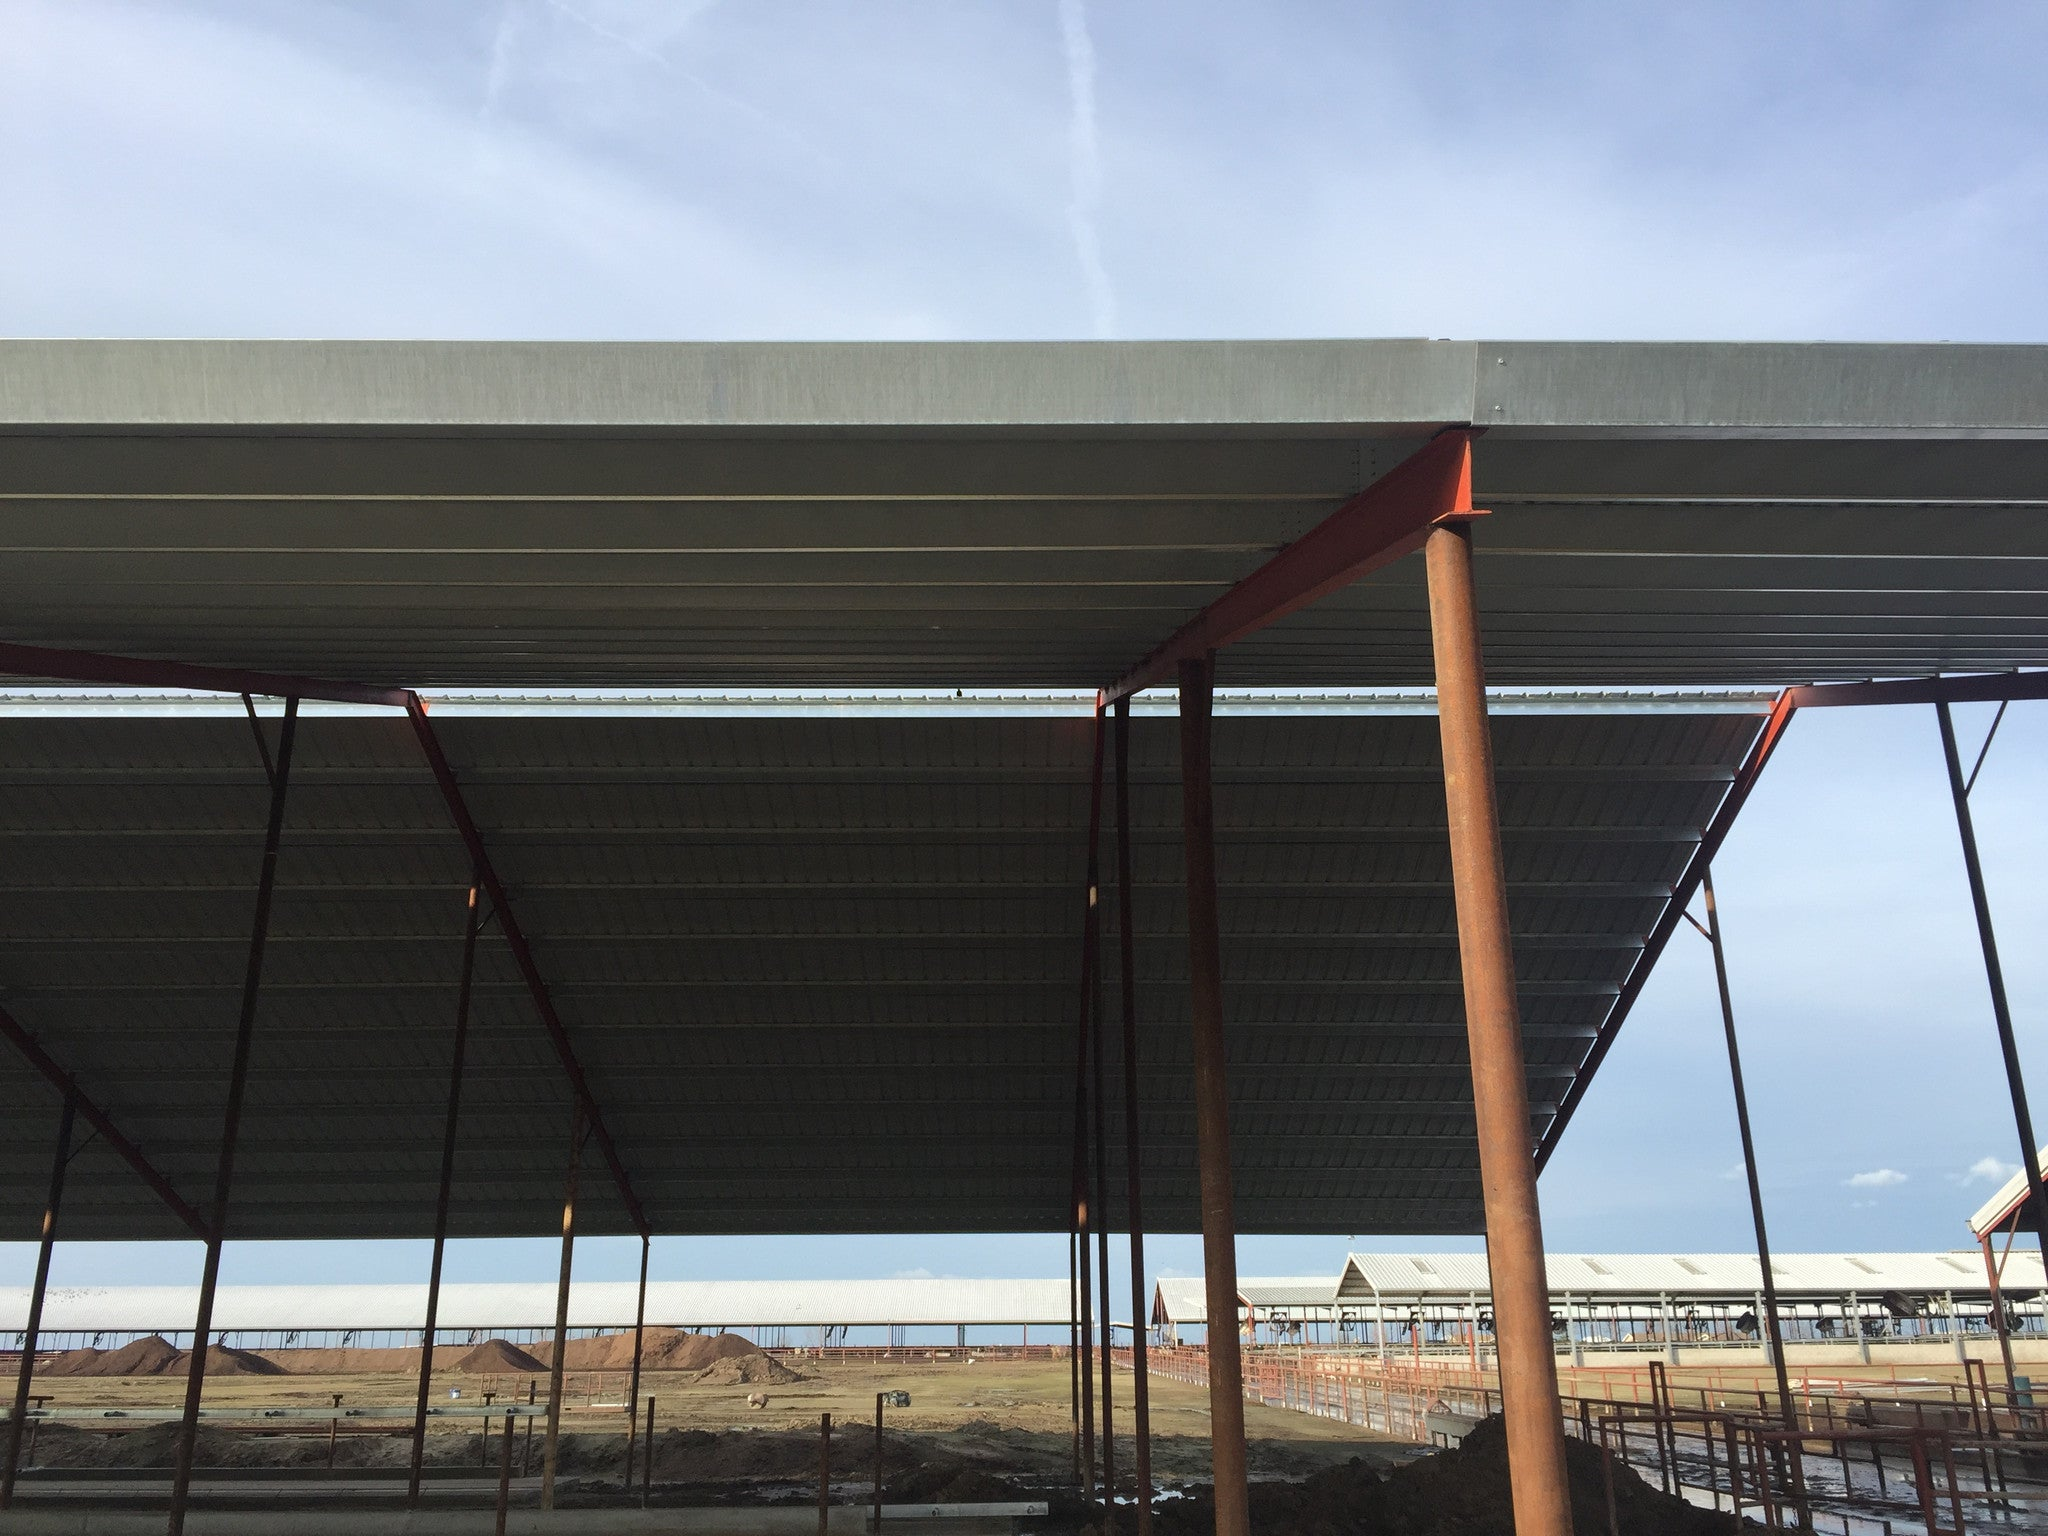 ... Metal Roofing Supplied by Jimu0027s Supply ... & Metal Roofing Sheets | Bakersfield - Jimu0027s Supply Company Inc.